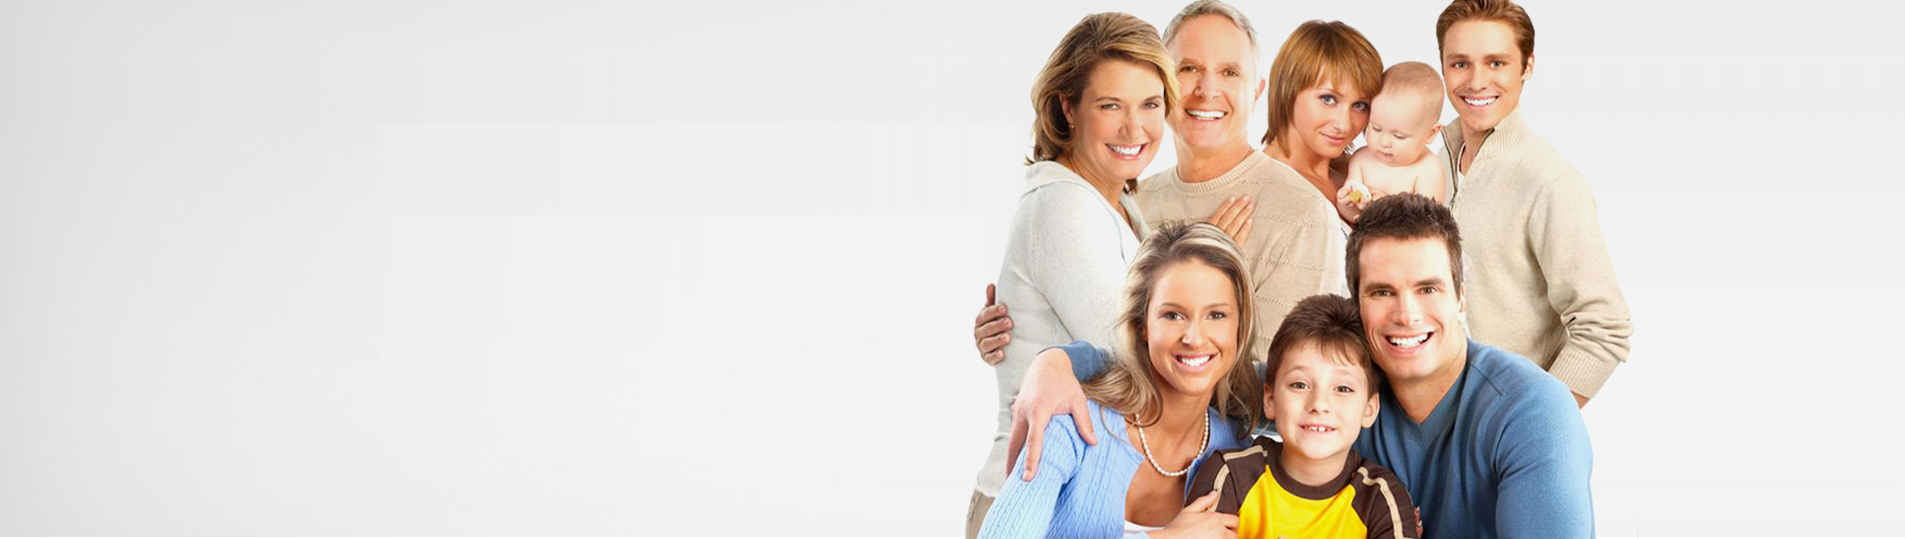 How to choose the correct Dentist Vermont?